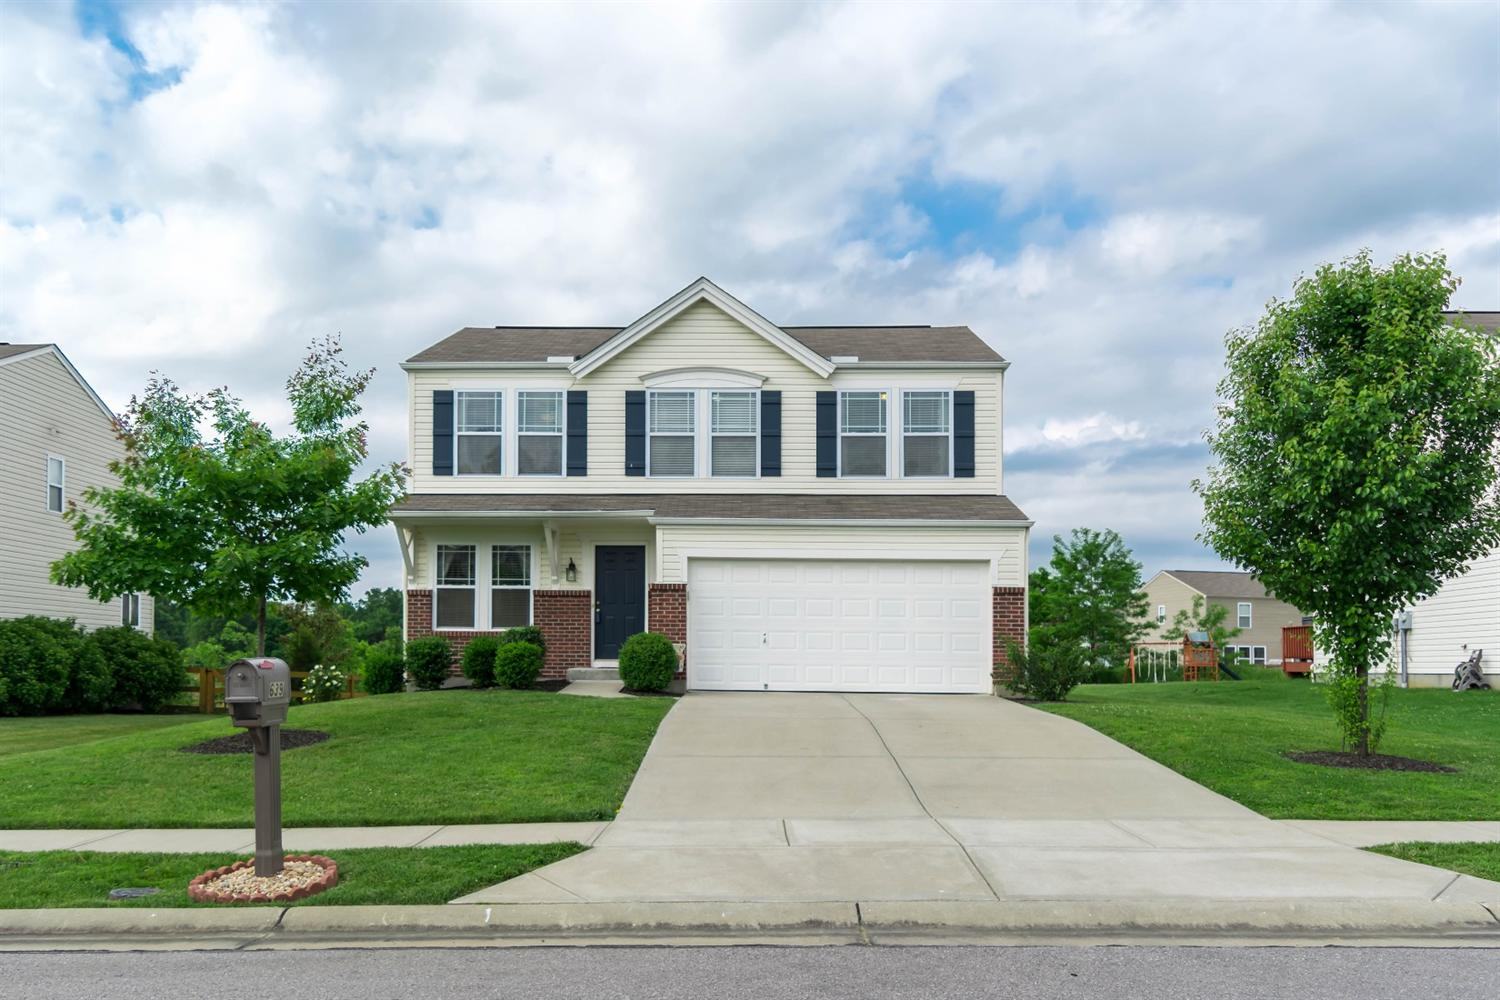 Photo 1 for 639 Makayla Ct Burlington, KY 41005